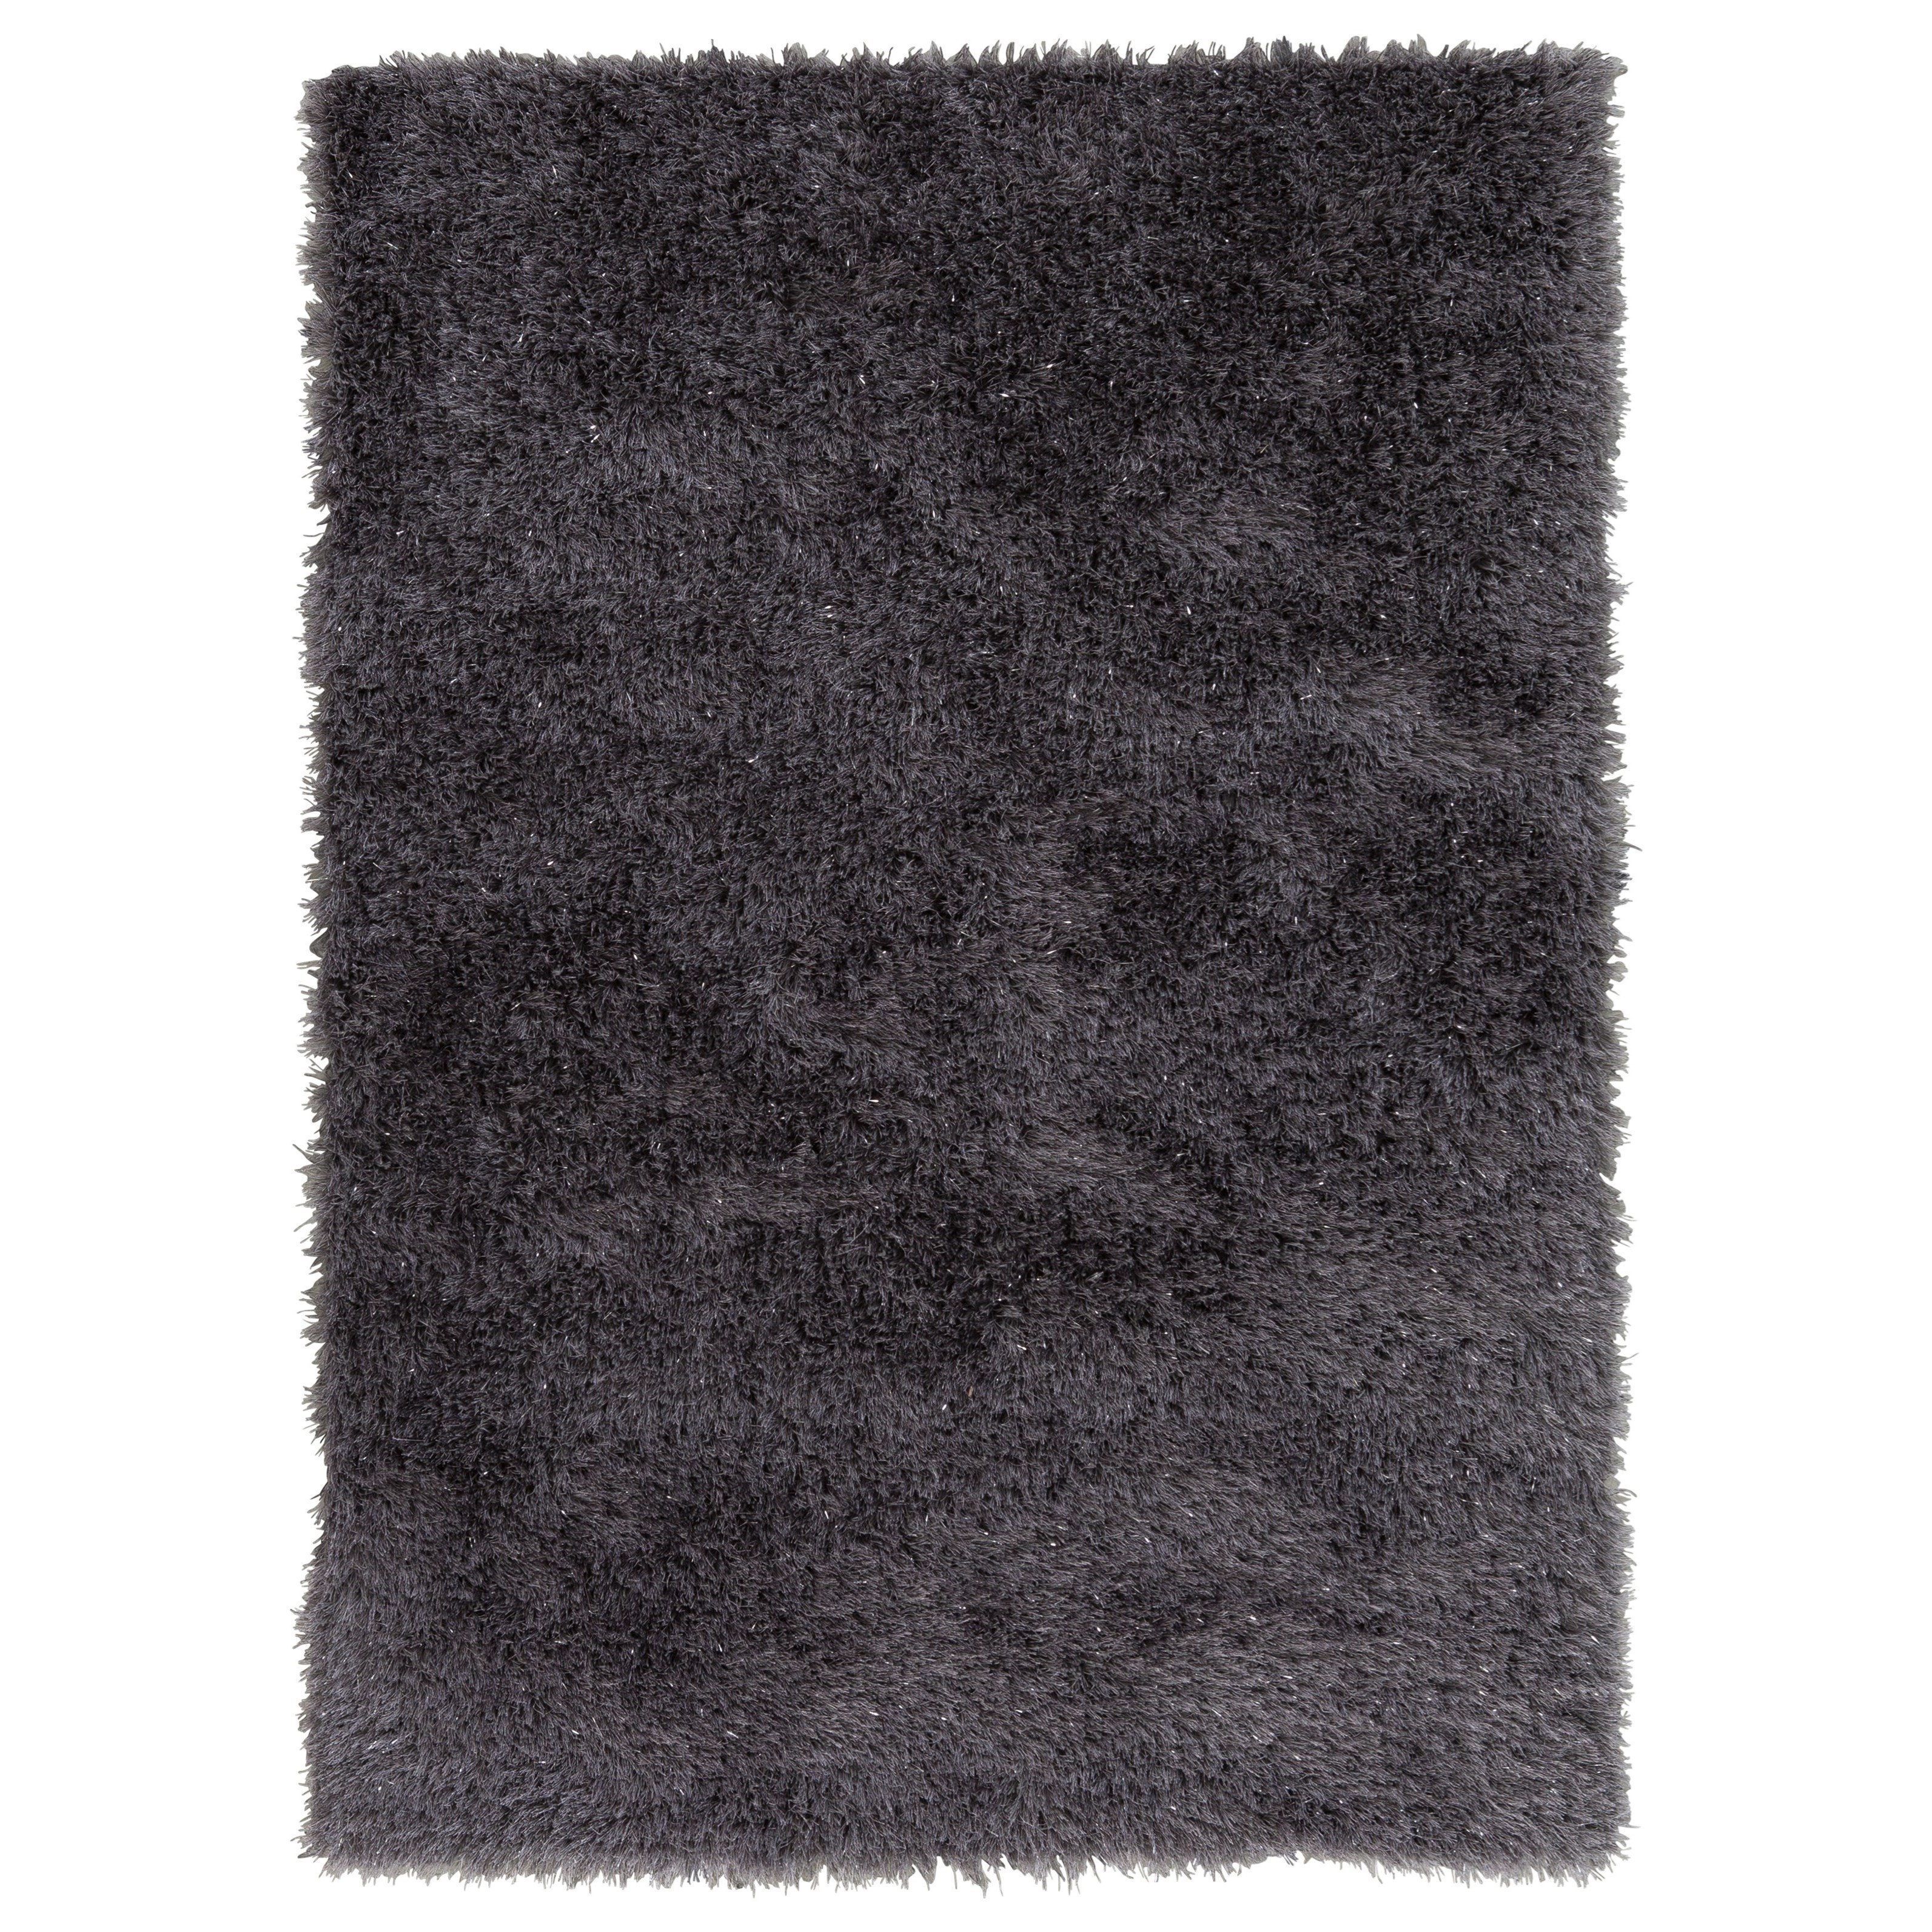 Contemporary Area Rugs Jaznae Gray Medium Rug by Signature Design by Ashley at Northeast Factory Direct